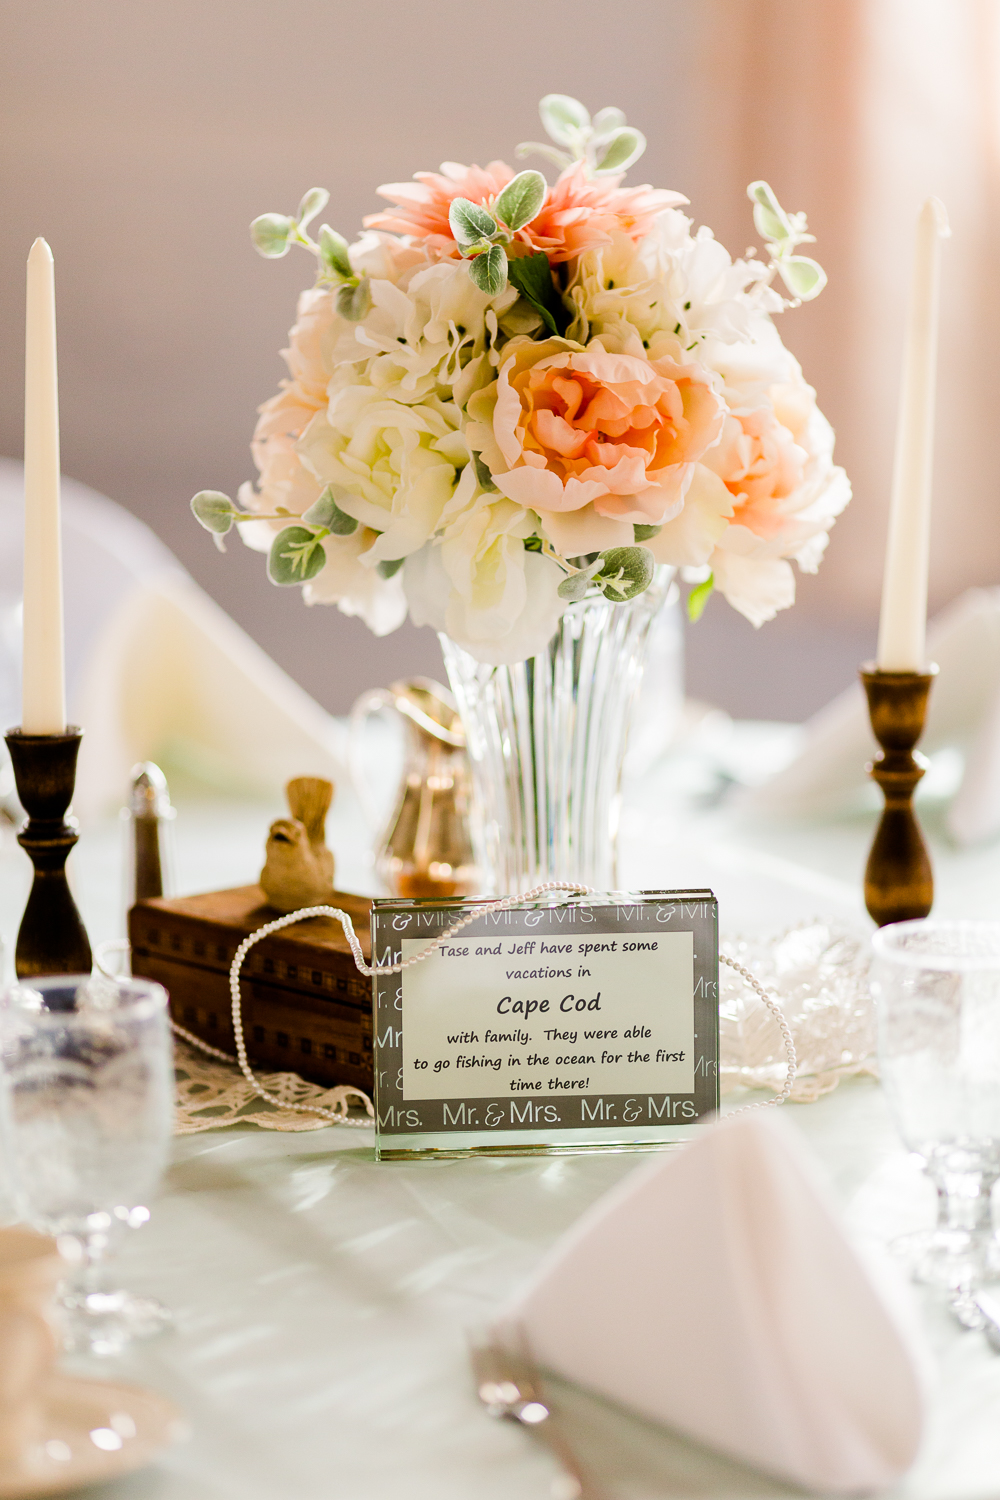 Floral centerpiece on wedding table.